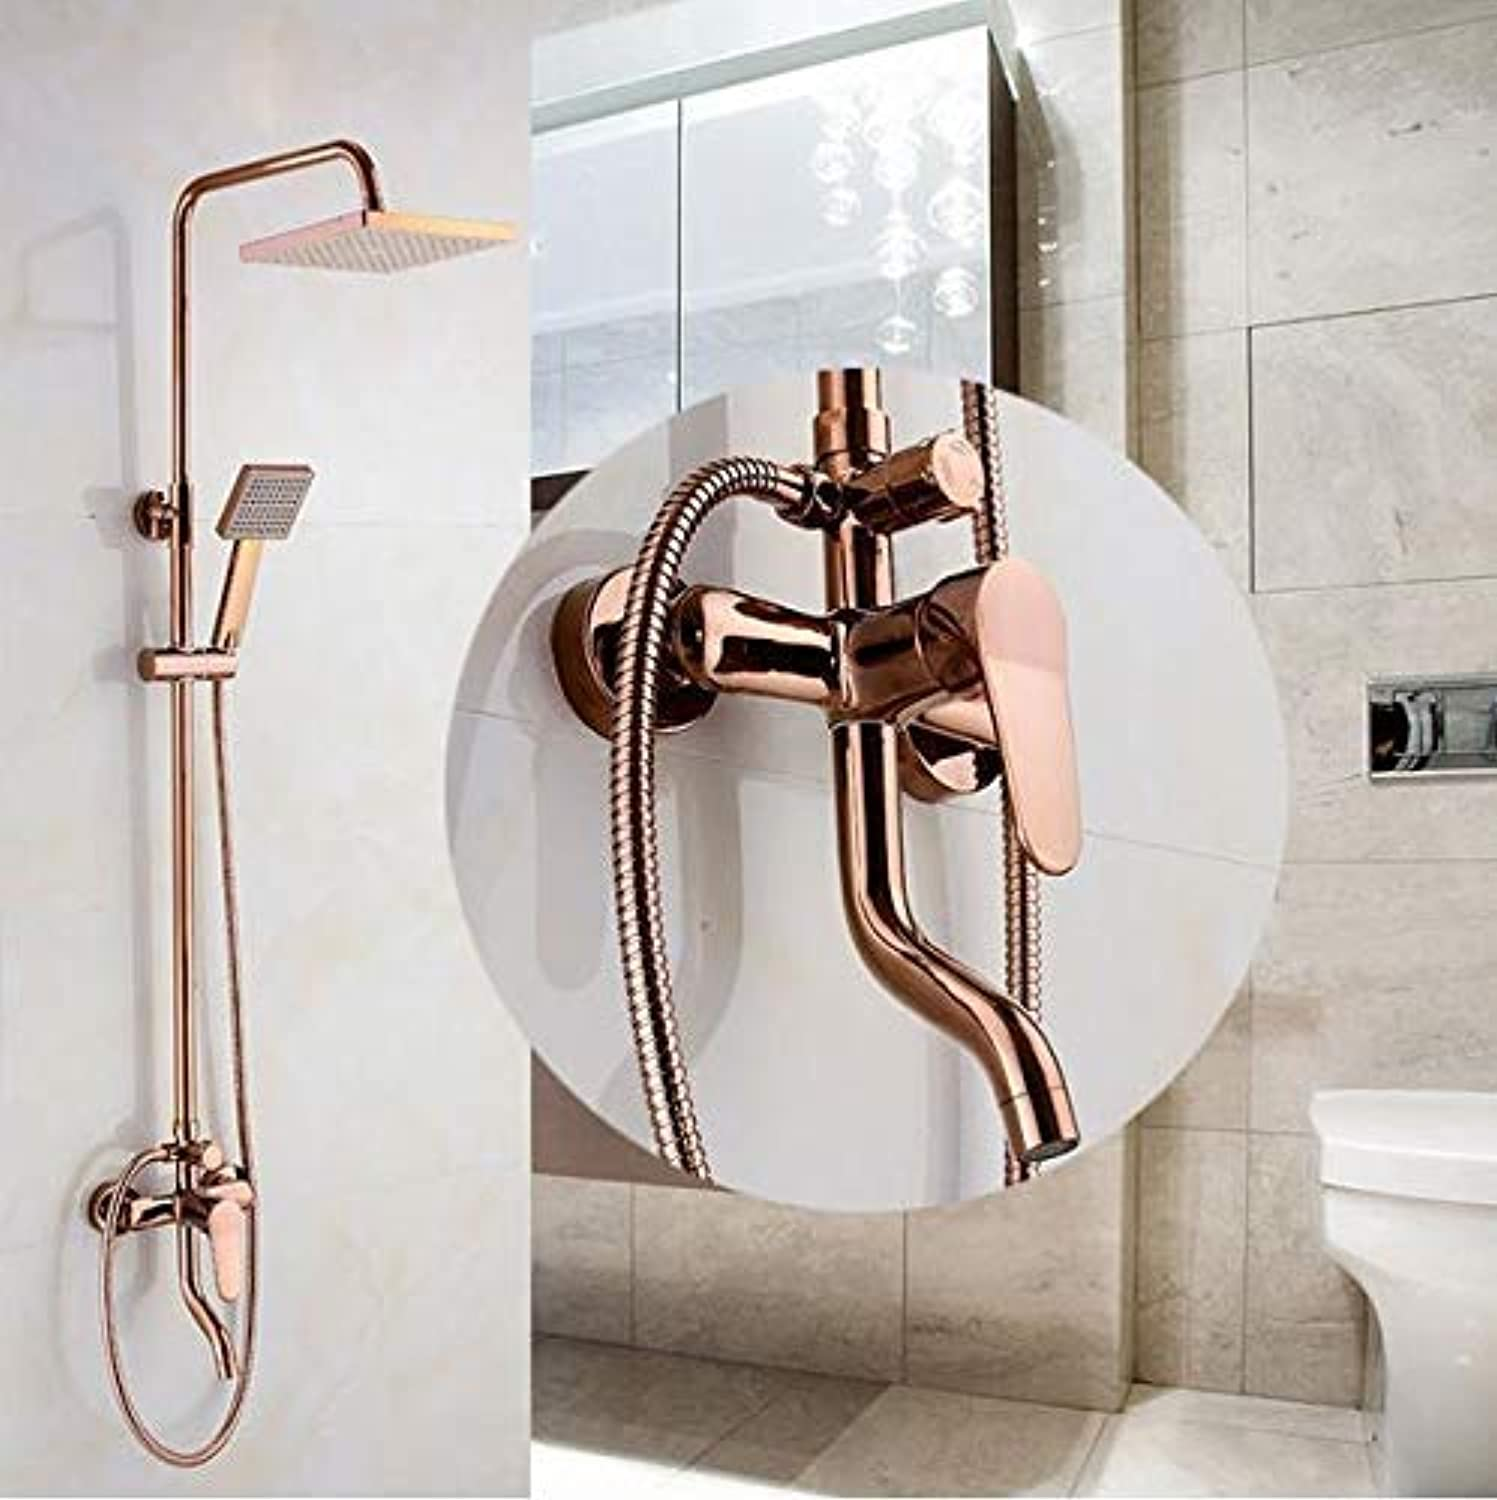 XINYUANJIAFANG Bathroom pink gold Shower Set Wall Mounted 8  Rainfall Shower Mixer Taps Faucet 3 Functions Mixer Valve Square Head